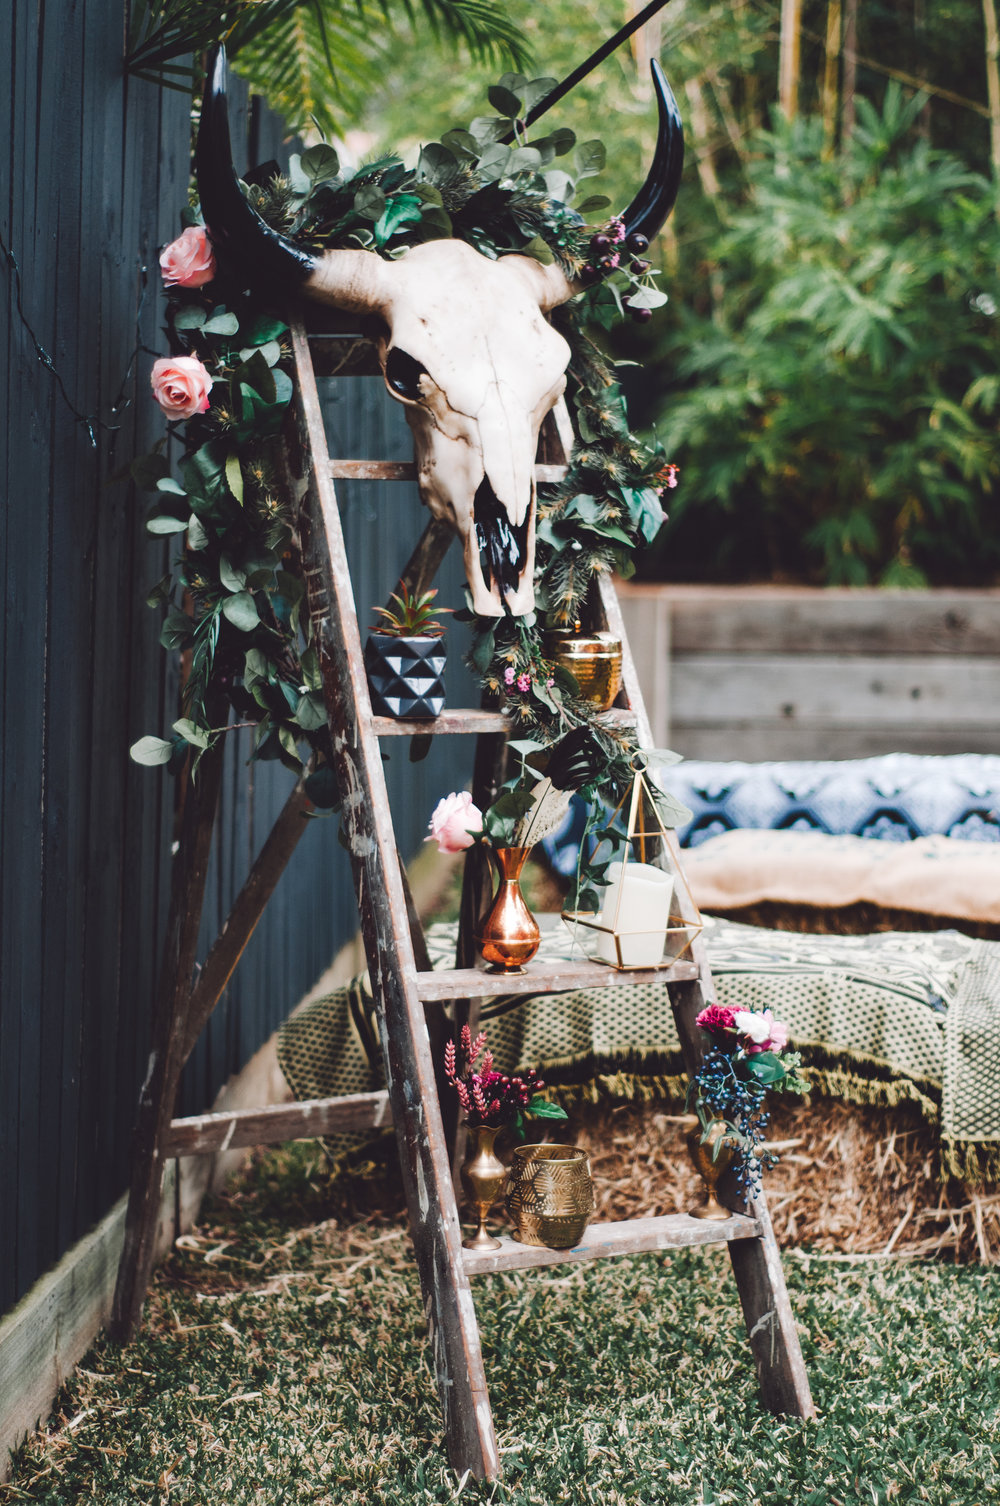 Lovelenscapes Wedding Photographer Destination Wedding Photographer Australia Boho Backyard Wedding Bull Skull Copper Wedding Accessories